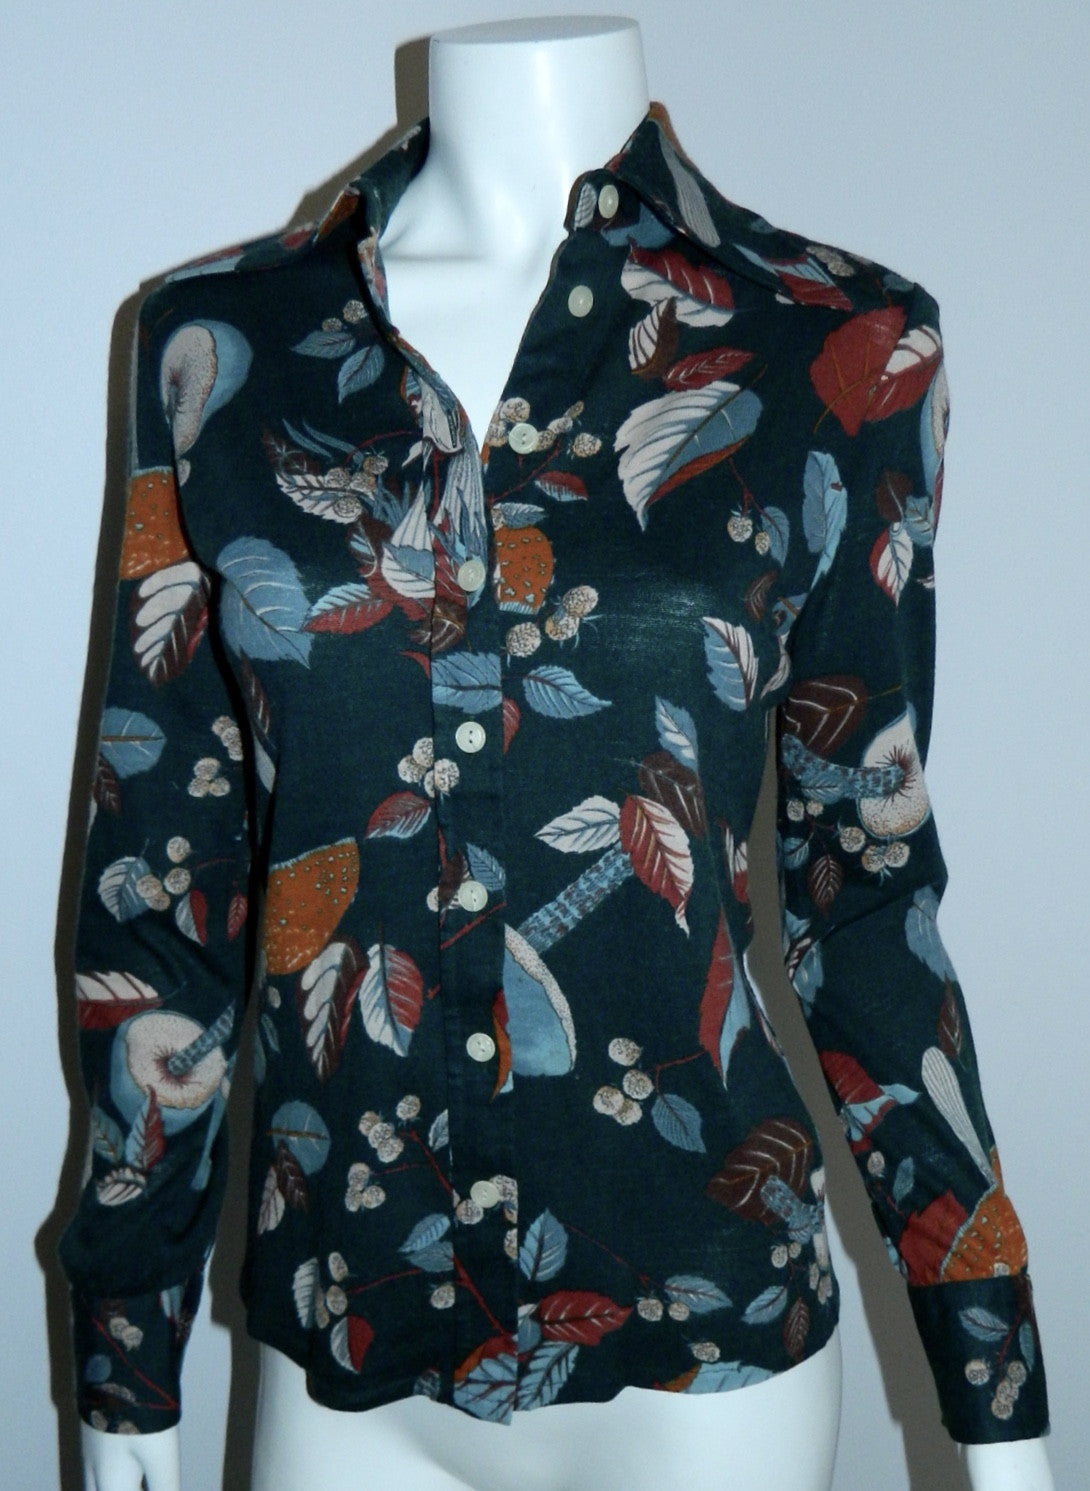 vintage 1970s blouse Fall foliage print / forest green leaves mushrooms Saint Clair Paris shirt XS